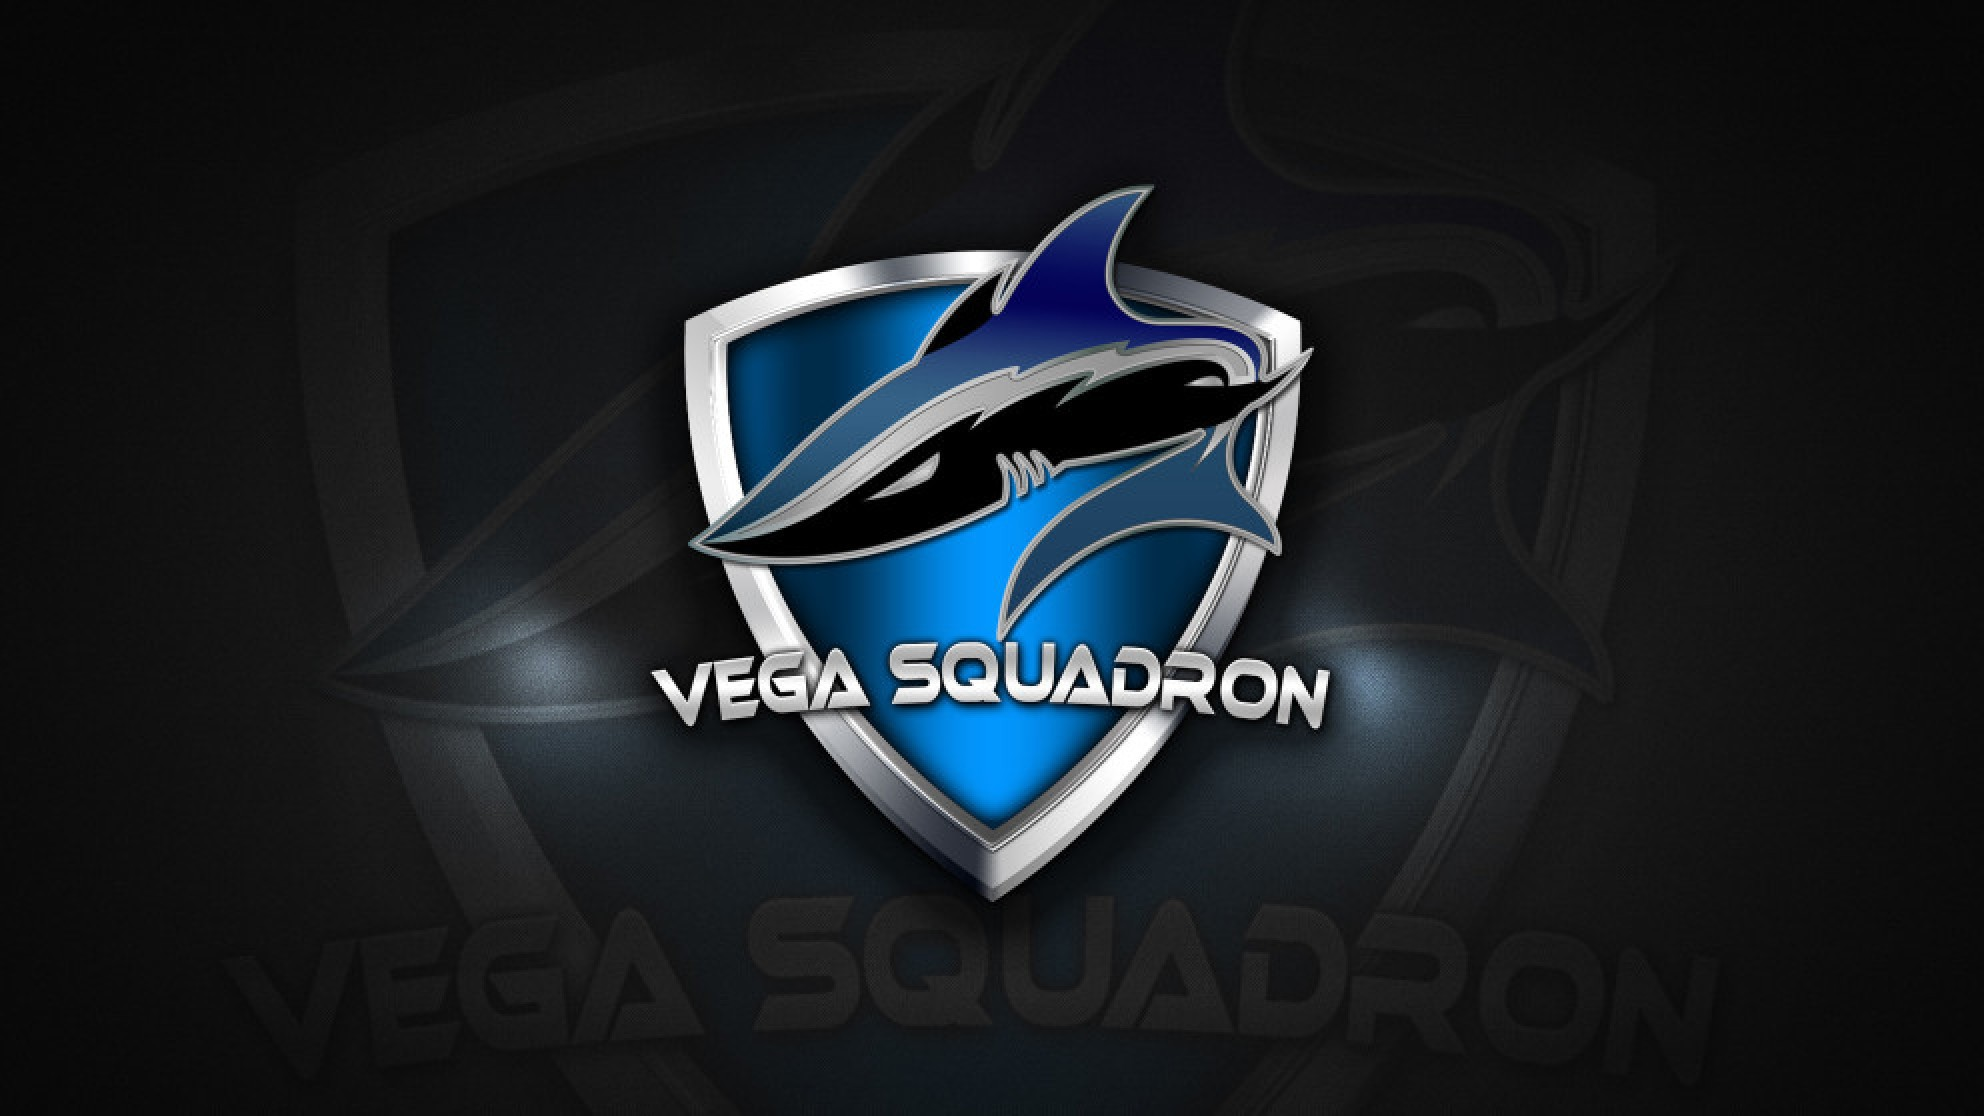 Team Lithium will fight under the banners of Vega Squadron